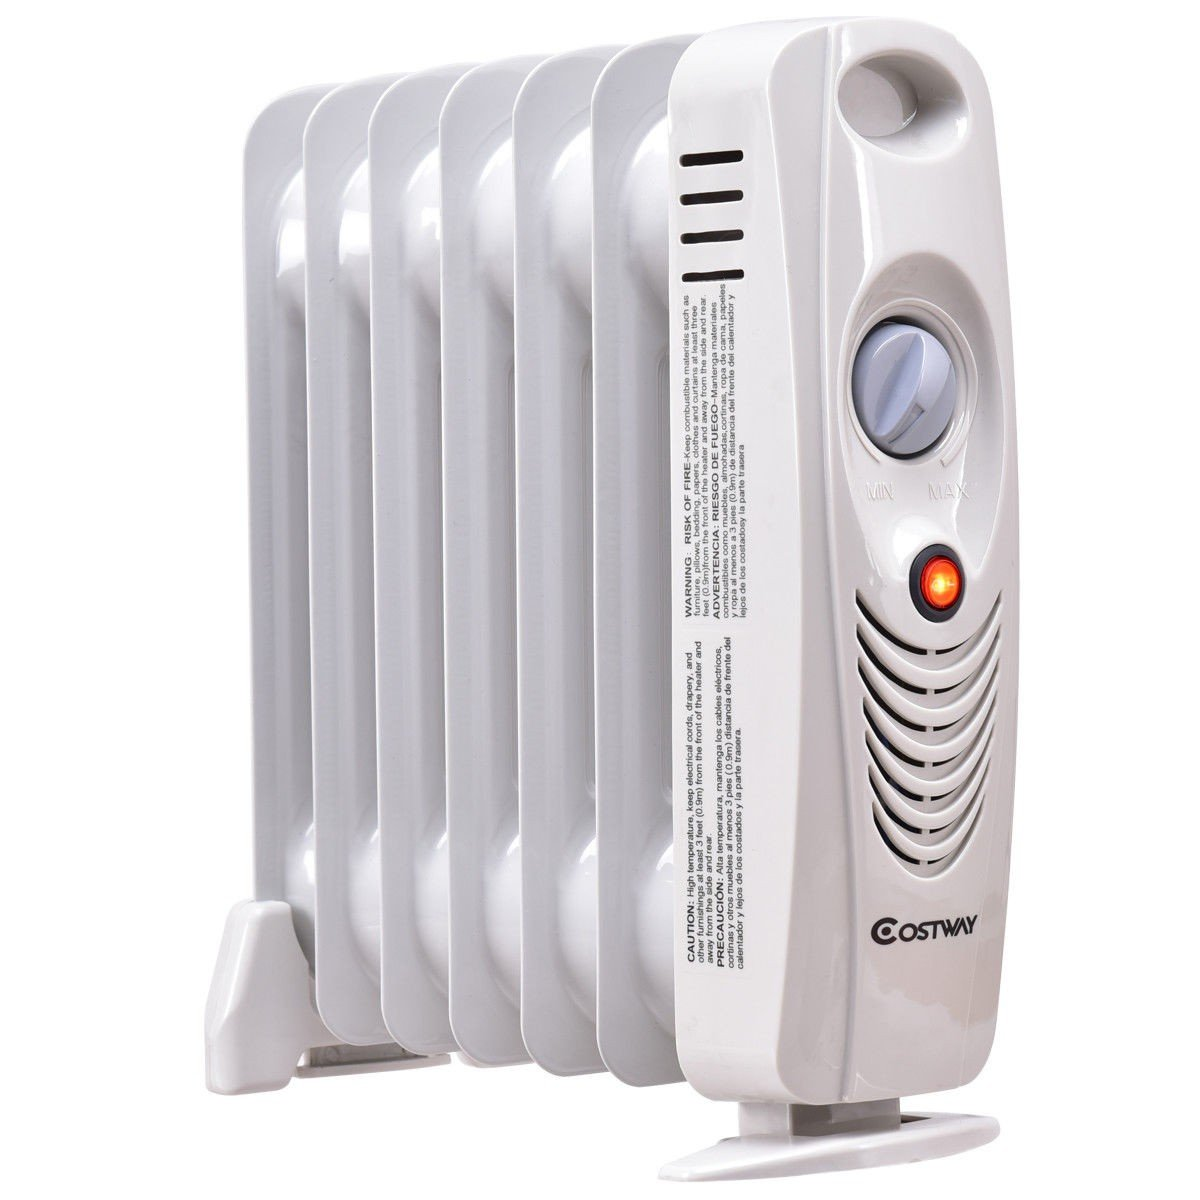 Amazon.com : DreamHank 700 W Portable Mini Electric Oil Filled Radiator Heater Home Room Use : Office Products